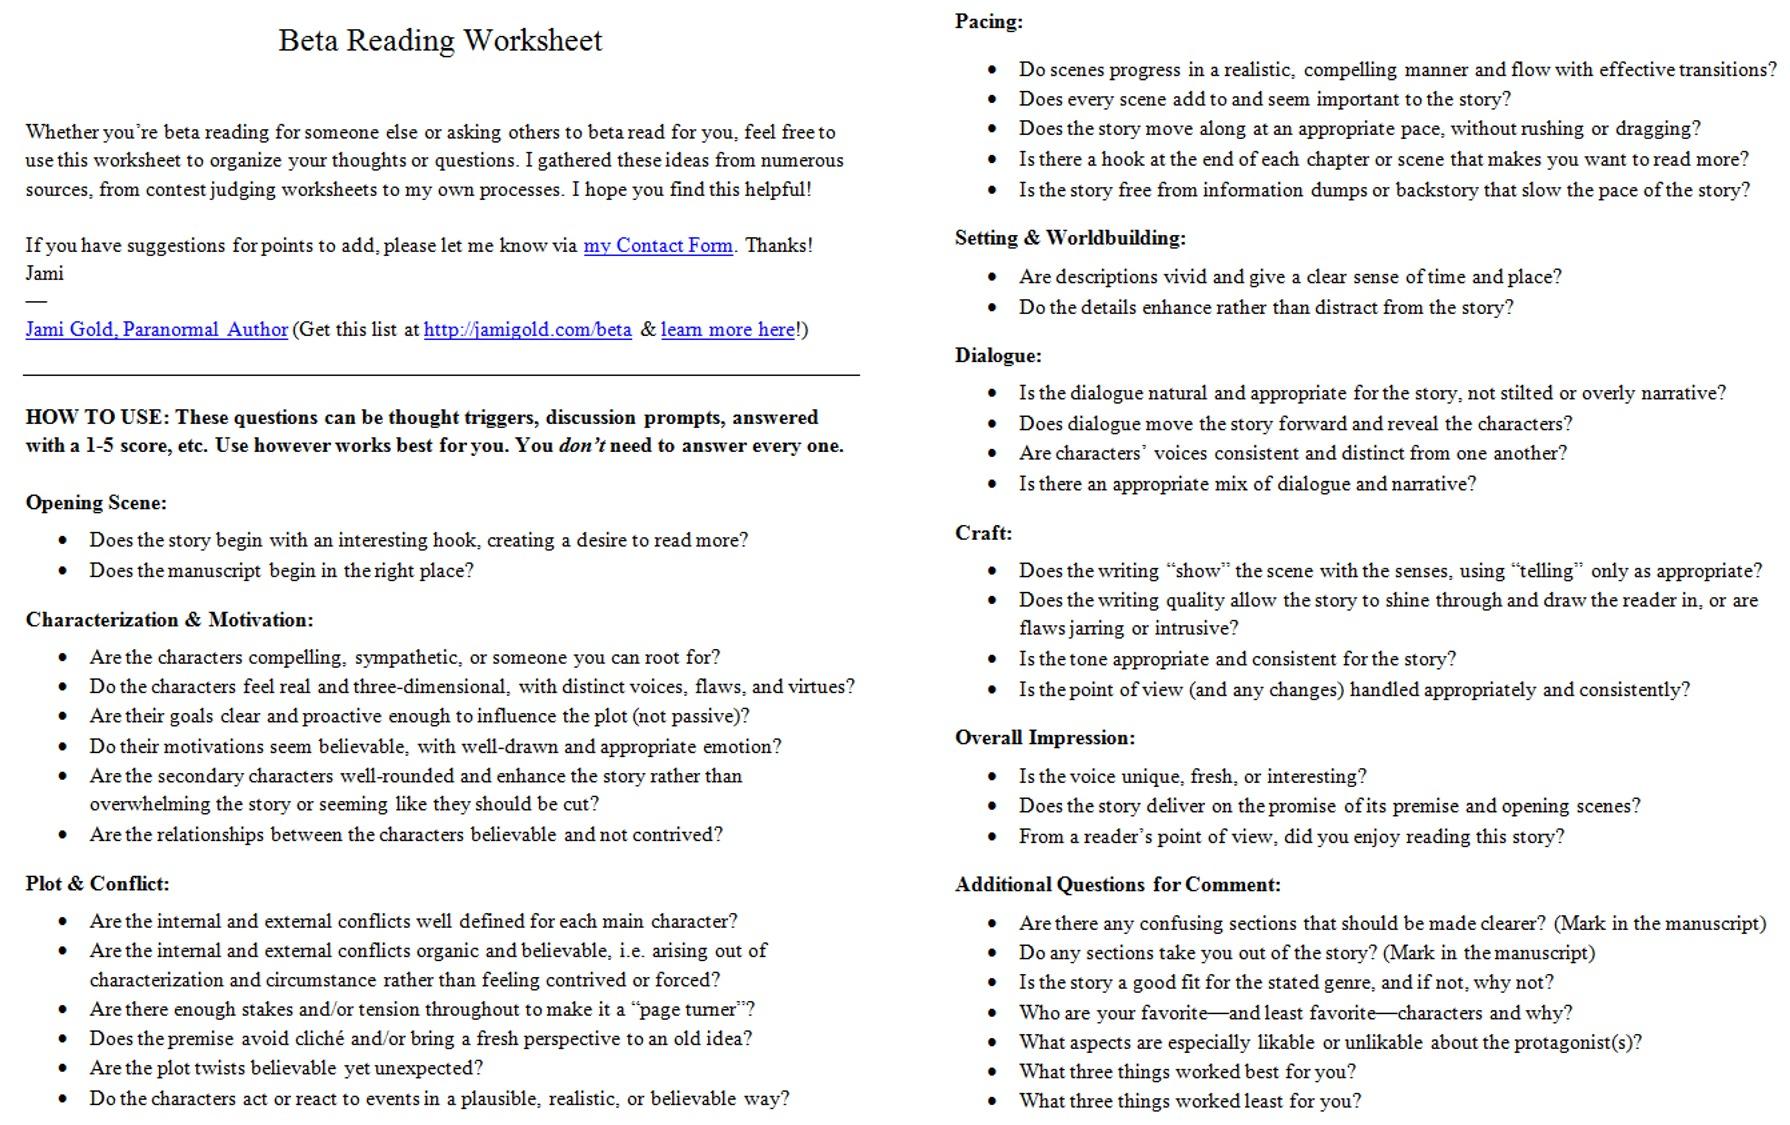 Aldiablosus  Surprising Worksheets For Writers  Jami Gold Paranormal Author With Handsome Screen Shot Of The Twopage Beta Reading Worksheet With Breathtaking Easter Phonics Worksheets Also Percentages Of Quantities Worksheet In Addition Worksheets For Measurement And Harcourt Math Worksheets Grade  As Well As Double The Consonant Worksheet Additionally Short Story Writing Worksheets From Jamigoldcom With Aldiablosus  Handsome Worksheets For Writers  Jami Gold Paranormal Author With Breathtaking Screen Shot Of The Twopage Beta Reading Worksheet And Surprising Easter Phonics Worksheets Also Percentages Of Quantities Worksheet In Addition Worksheets For Measurement From Jamigoldcom